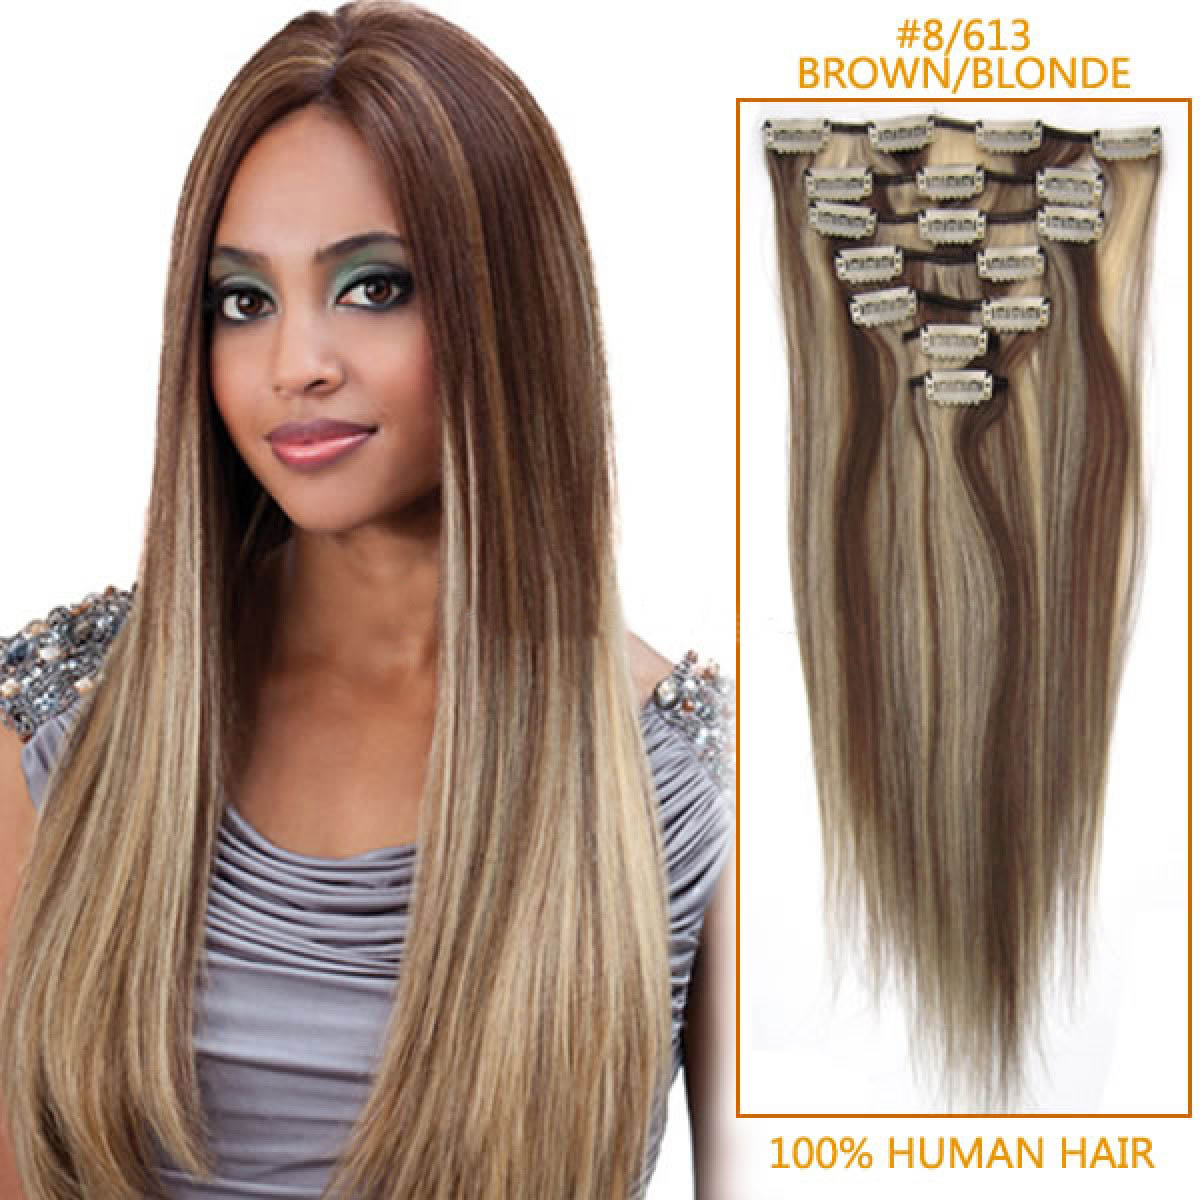 20 Inch 8613 Brownblonde Clip In Remy Human Hair Extensions 7pcs